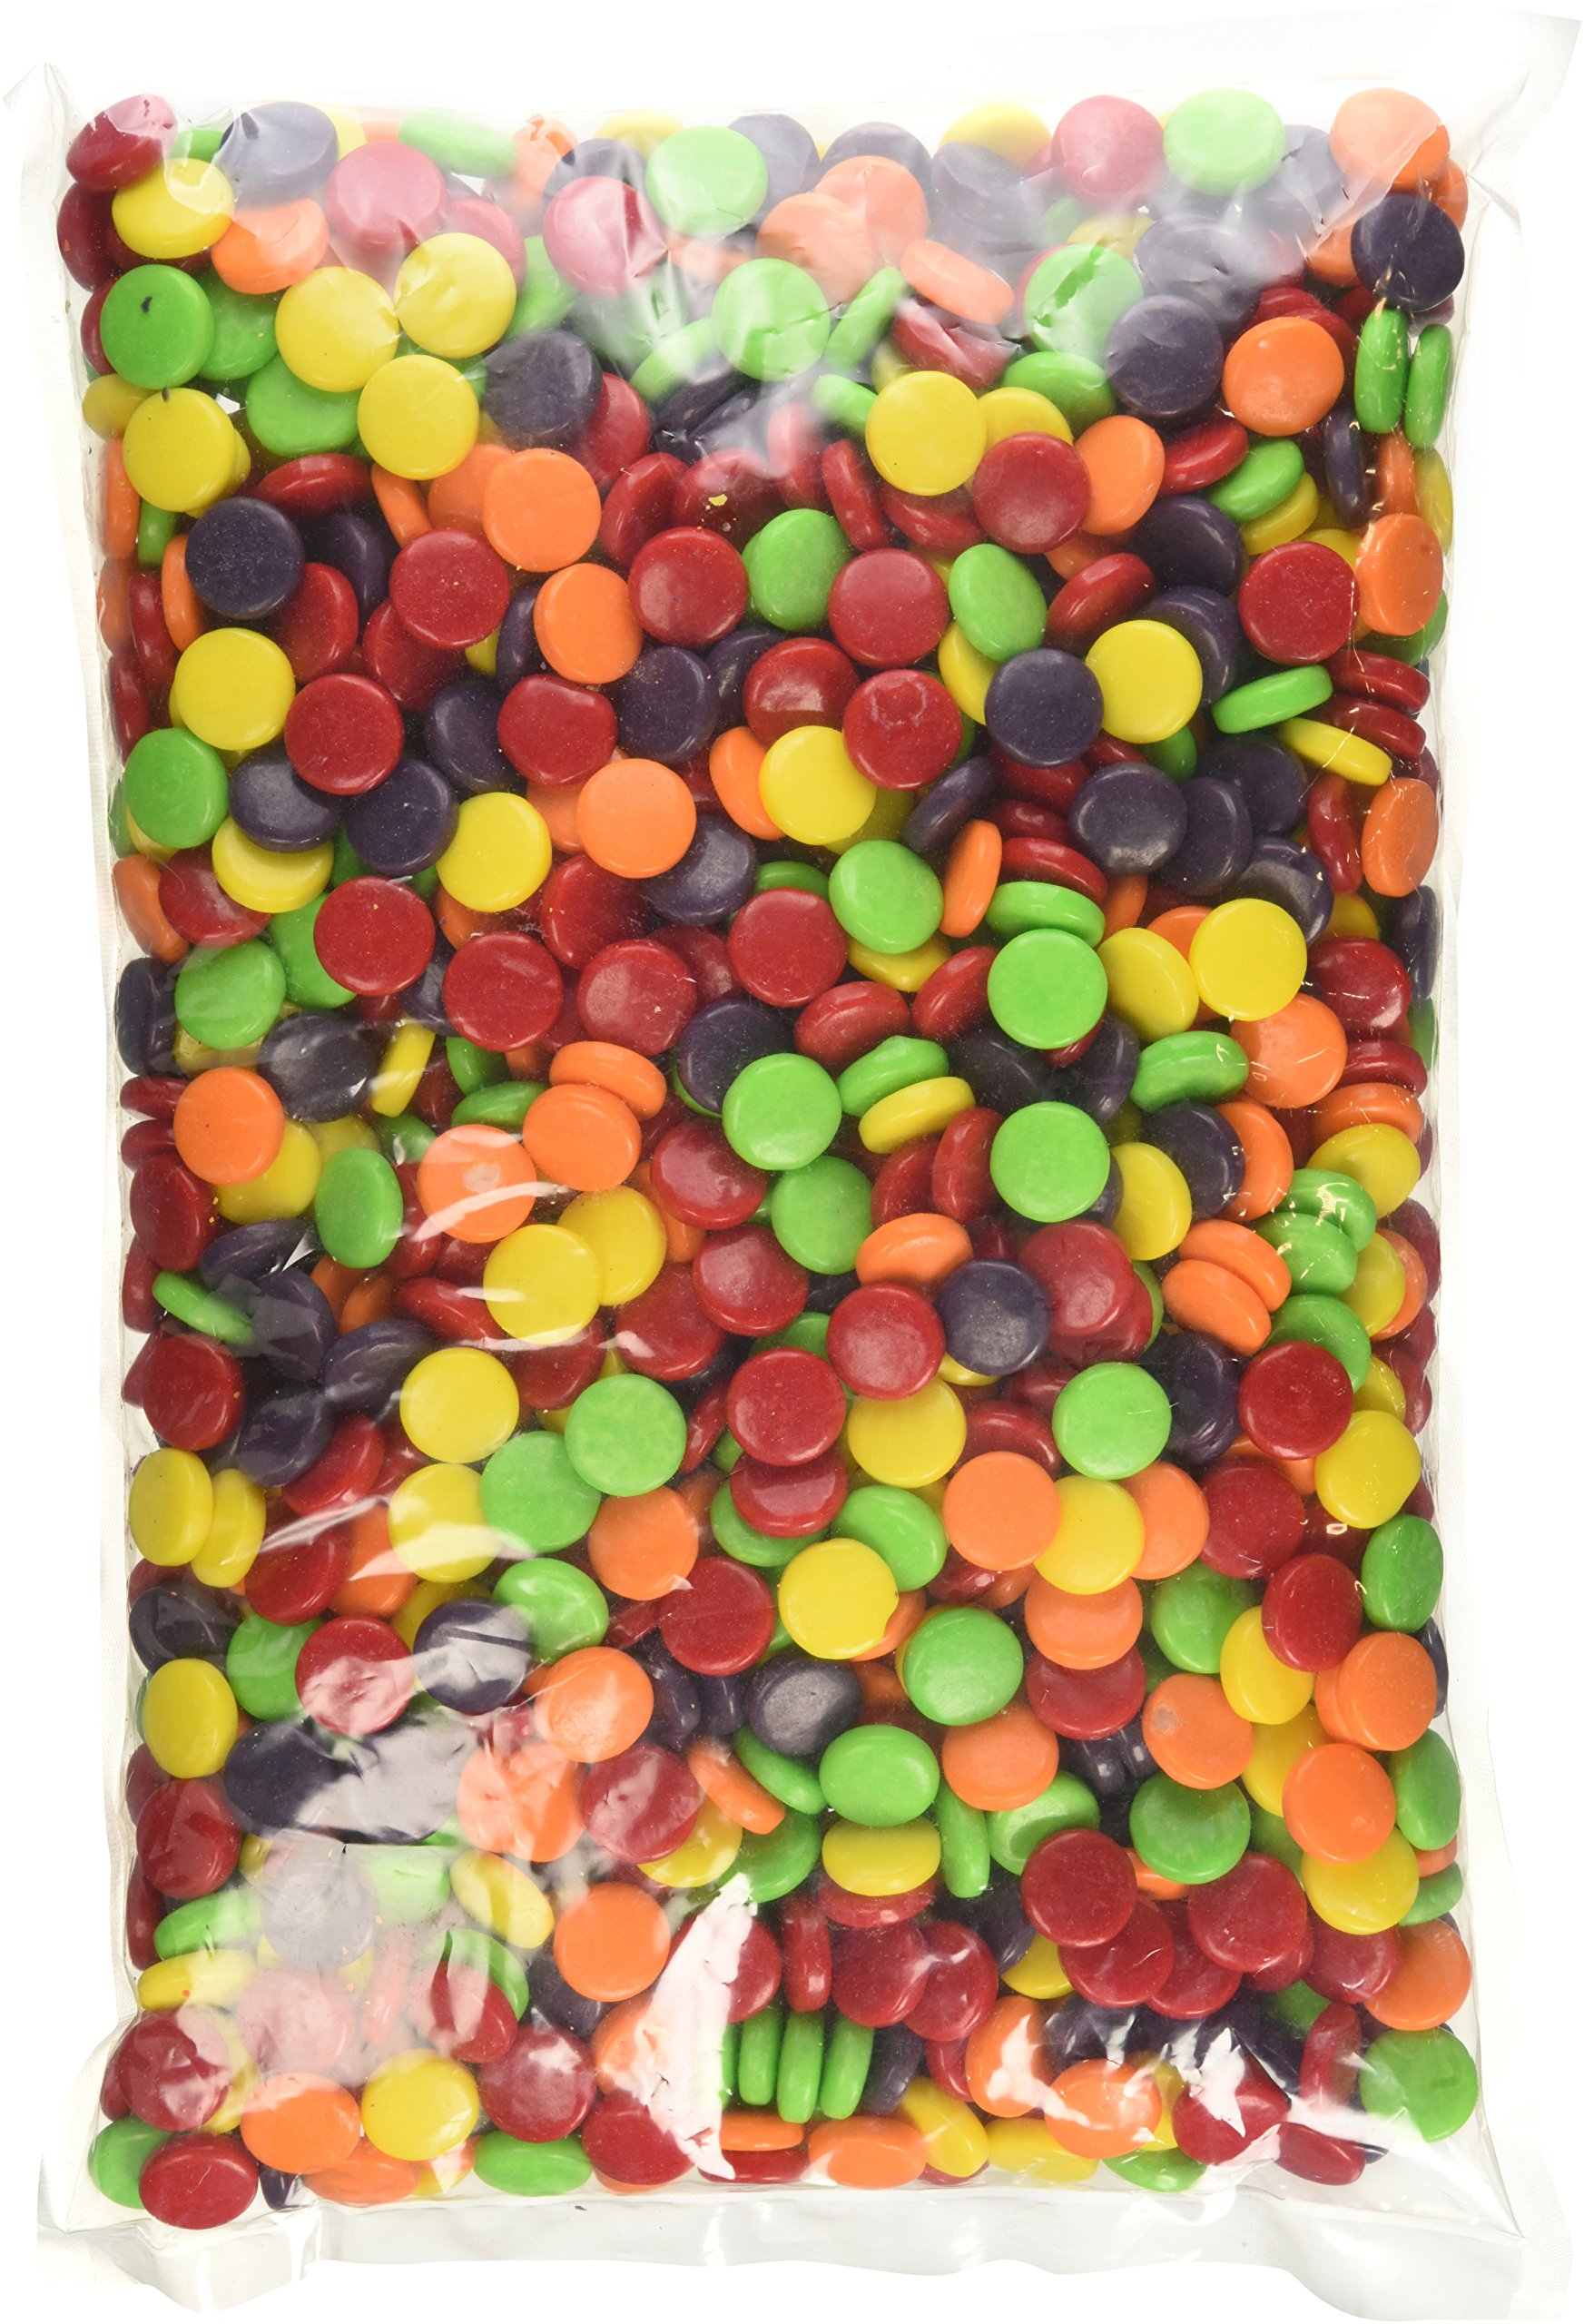 Spree Chewy - Assorted Flavors,5 pounds by Spree (Image #1)